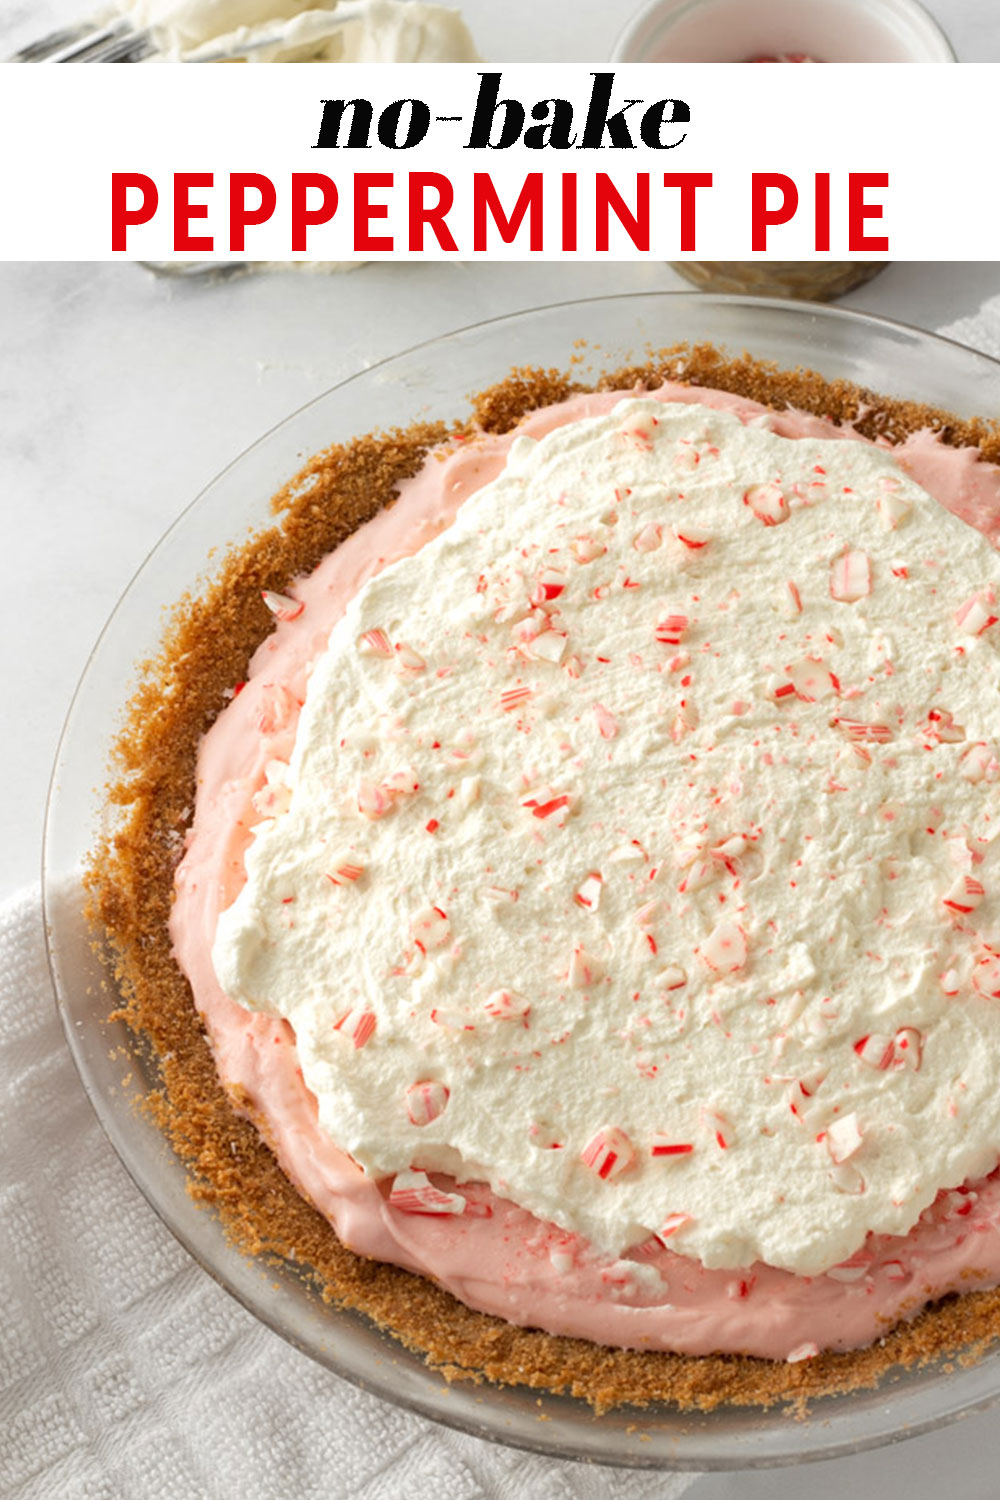 No-bake Peppermint Pie Pinterest pin.